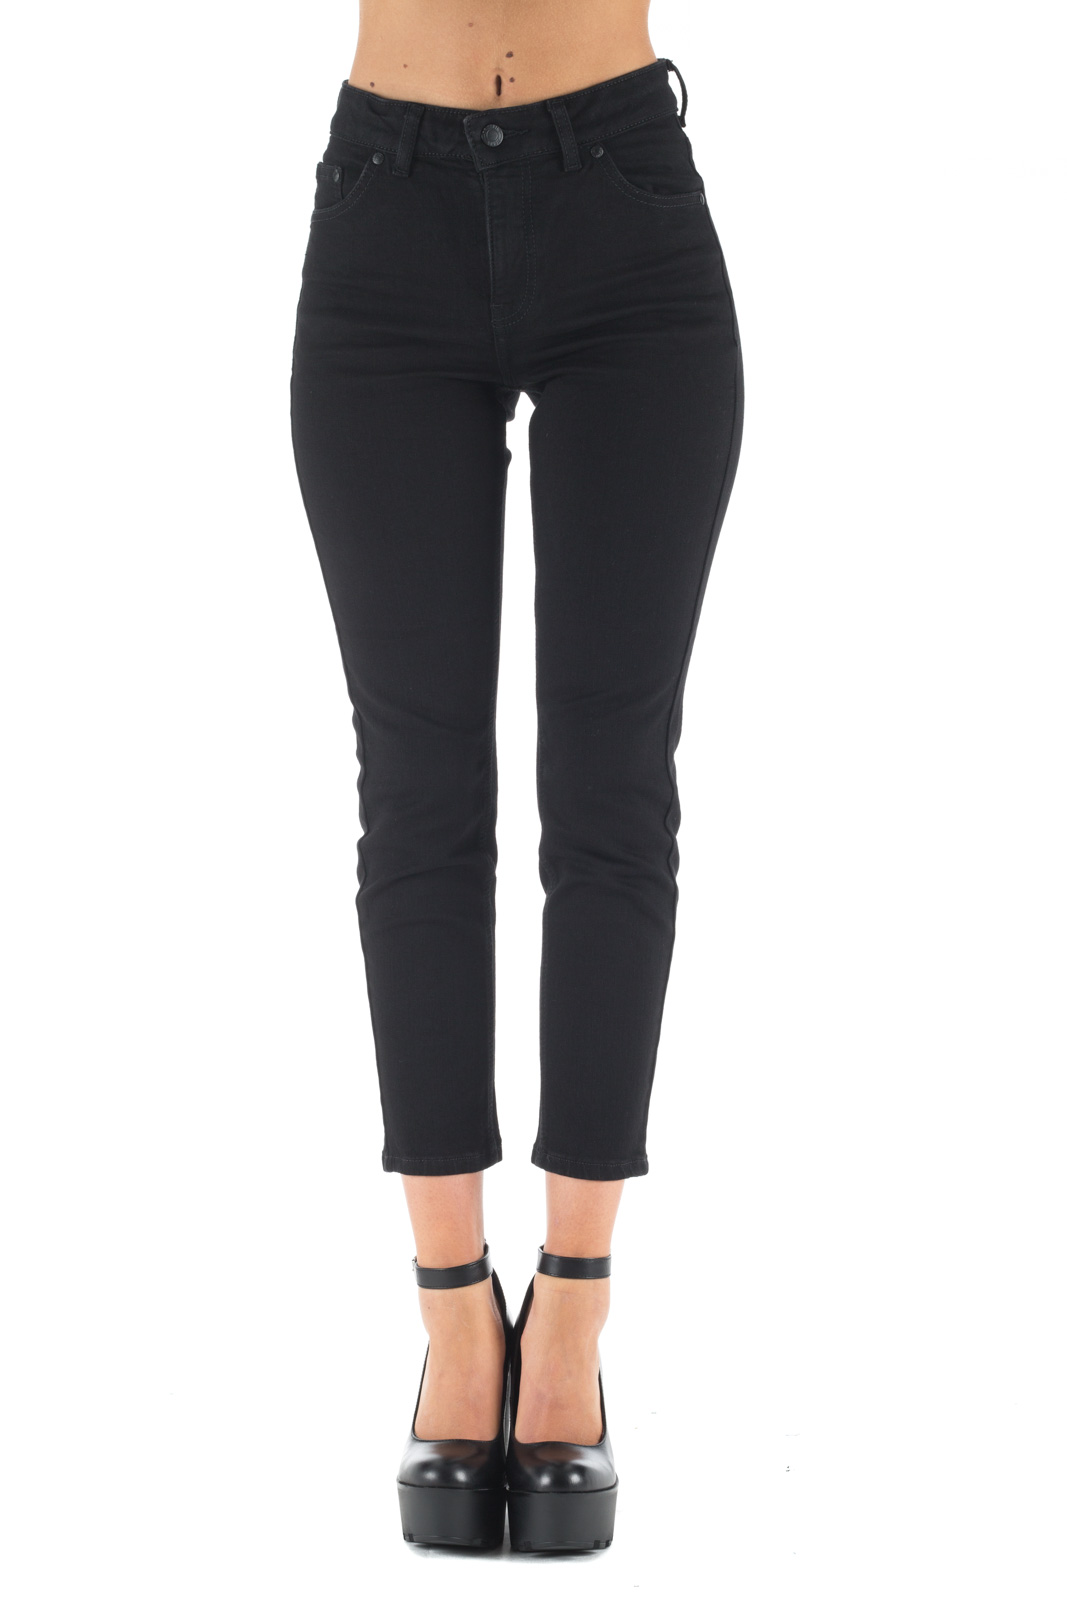 Dr. Denim - Jeans Edie straight to high waist